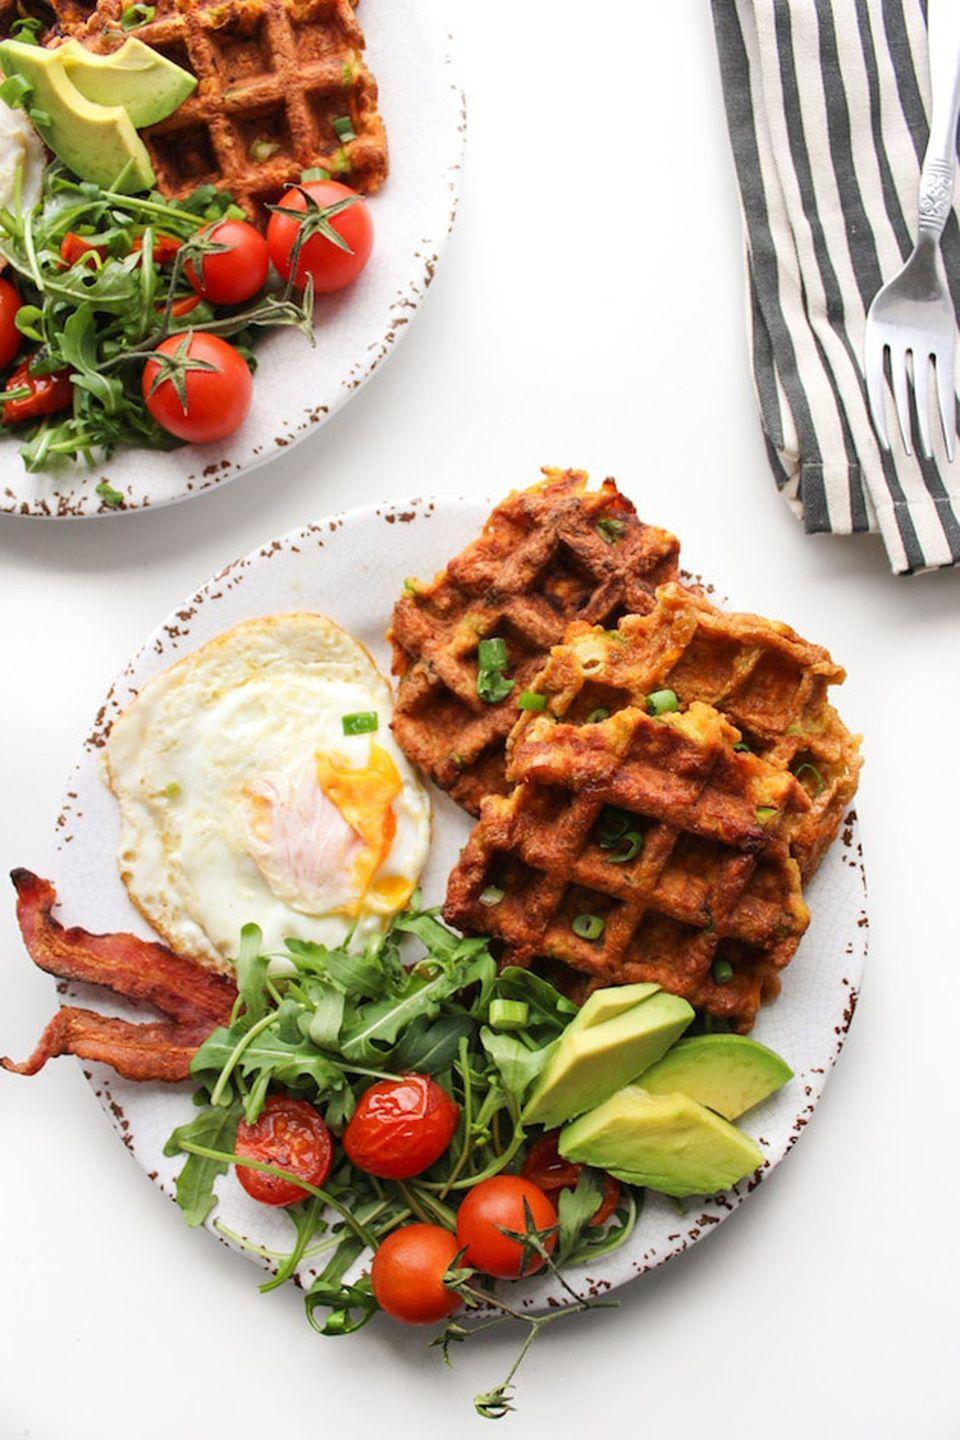 """<p>Pair your healthy waffles with bacon and eggs for an unforgettably delicious wake-up call.</p><p><strong>Get the recipe at <a href=""""https://www.asaucykitchen.com/paleo-sweet-potato-waffles/"""" rel=""""nofollow noopener"""" target=""""_blank"""" data-ylk=""""slk:A Saucy Kitchen"""" class=""""link rapid-noclick-resp"""">A Saucy Kitchen</a>.</strong><br></p><p><strong><a class=""""link rapid-noclick-resp"""" href=""""https://www.amazon.com/dp/B003ZHU8M0?tag=syn-yahoo-20&ascsubtag=%5Bartid%7C10050.g.877%5Bsrc%7Cyahoo-us"""" rel=""""nofollow noopener"""" target=""""_blank"""" data-ylk=""""slk:SHOP GRATERS"""">SHOP GRATERS</a><br></strong></p>"""